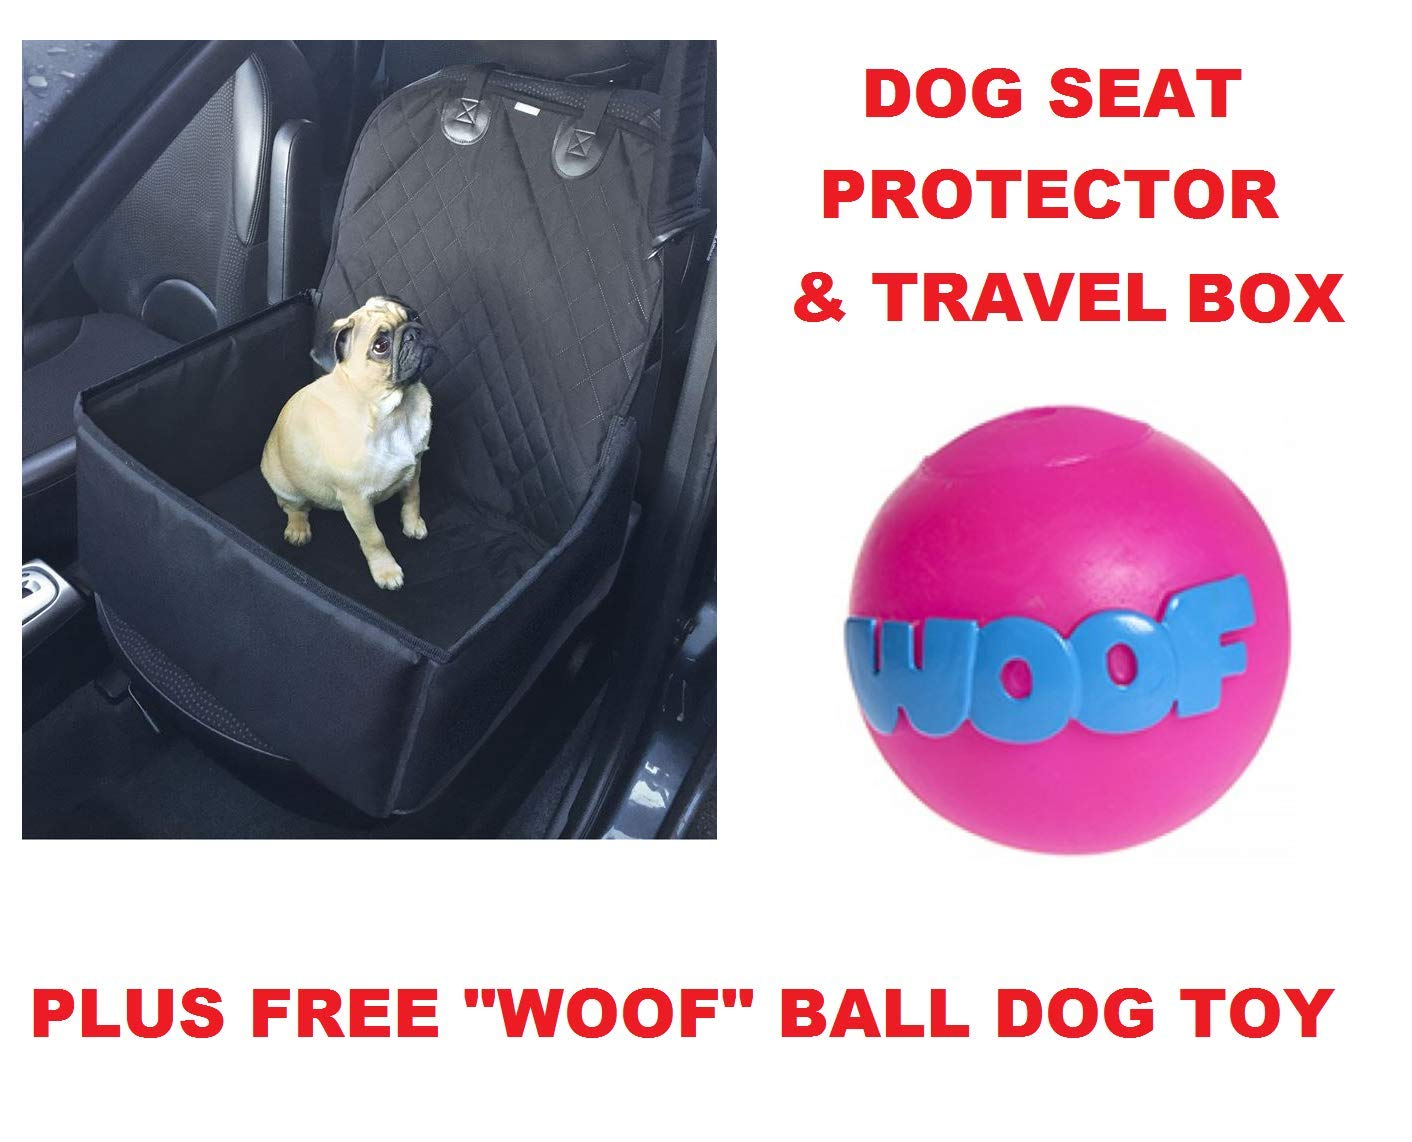 2 In 1 Foldable Dog Car Seat Protector & Pet Travel Box & Woof Toy Ball Package Package Roaduserdirect Packages